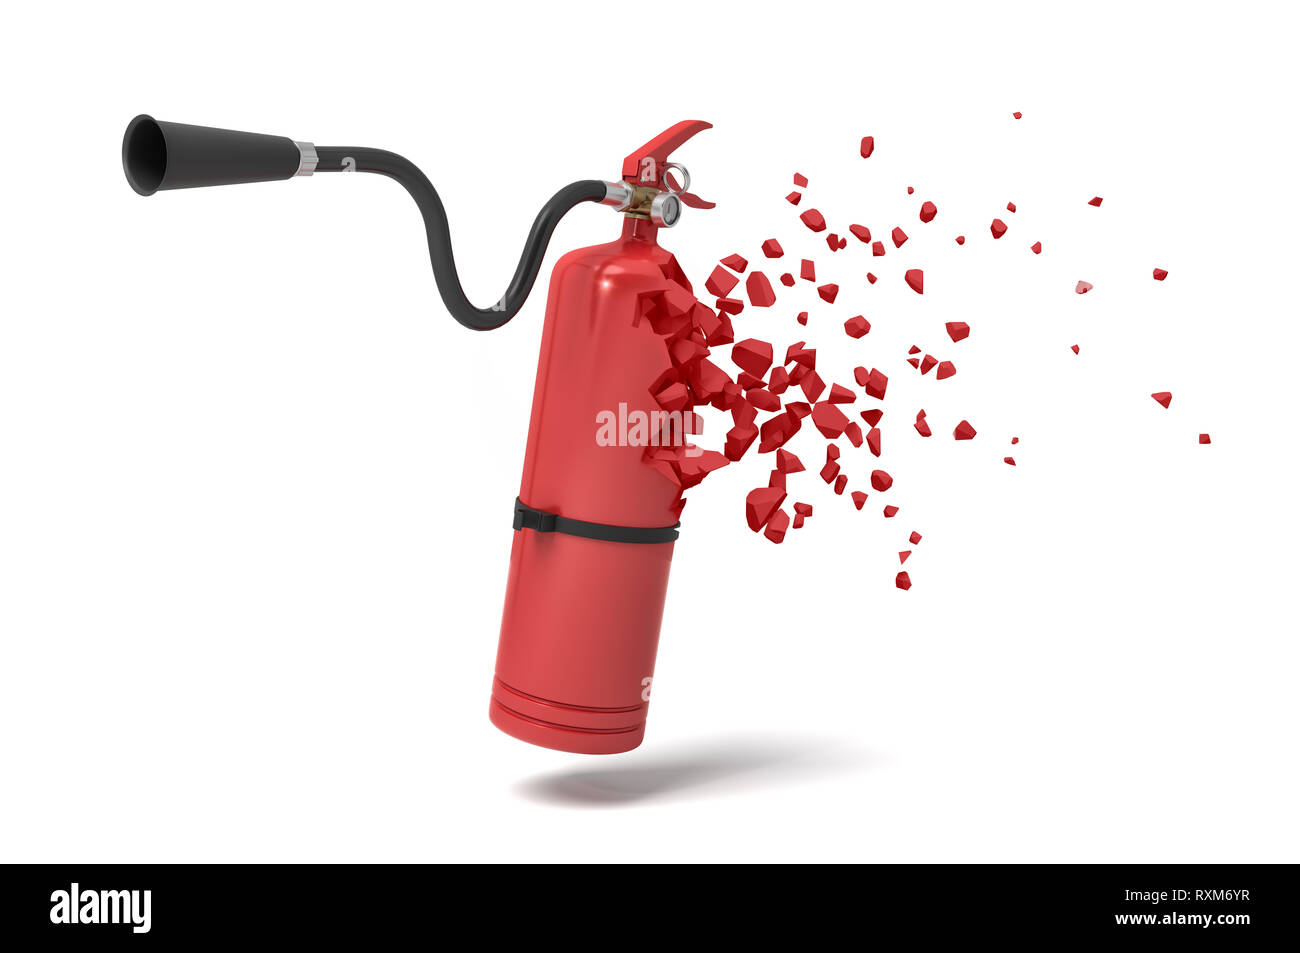 3d rendering of red fire extinguisher starting to dissolve into particles on white background. - Stock Image